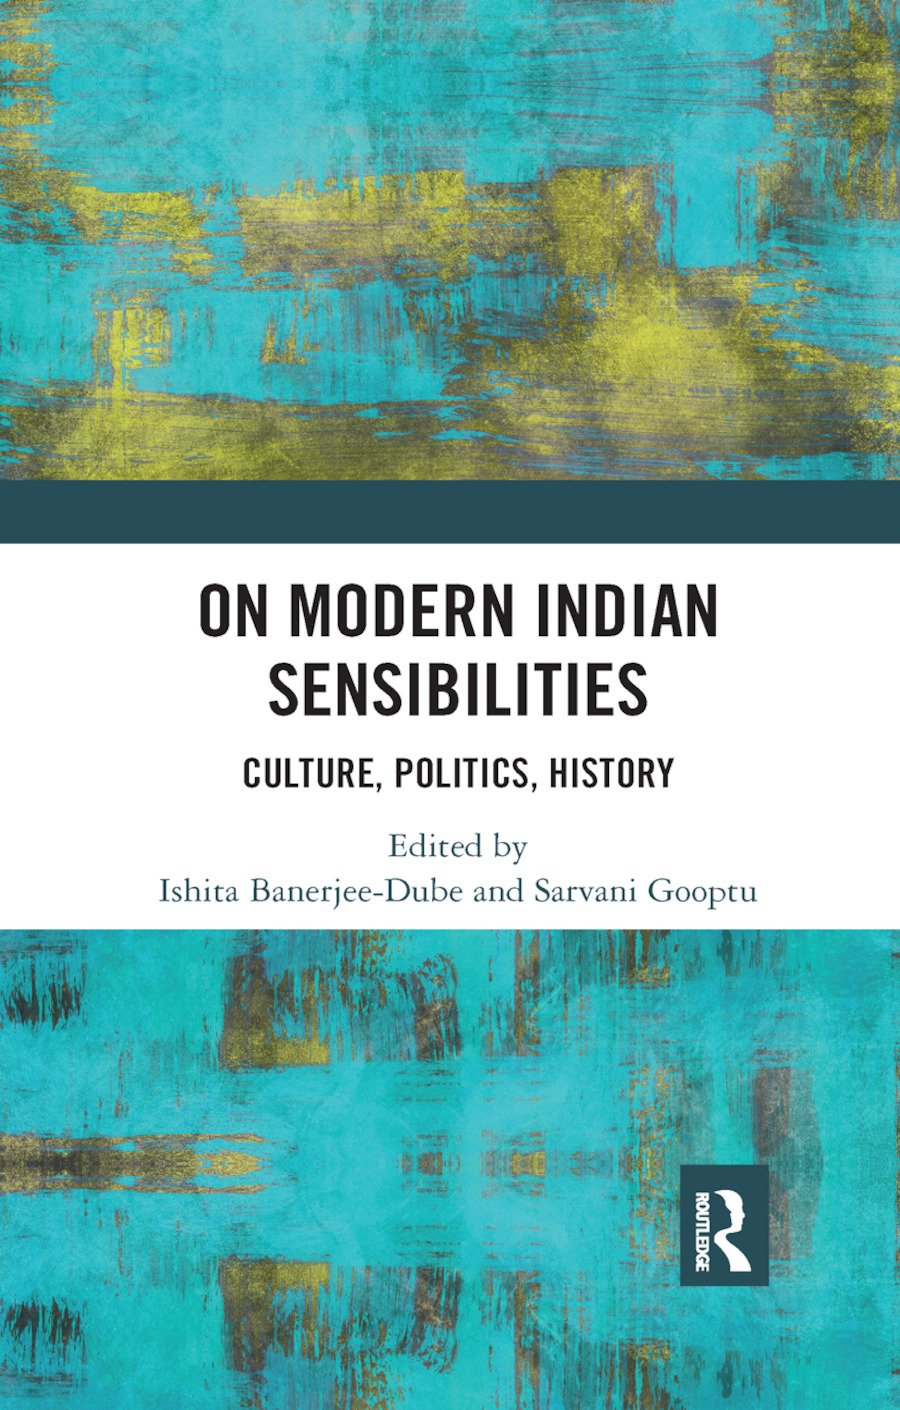 On Modern Indian Sensibilities: Culture, Politics, History book cover